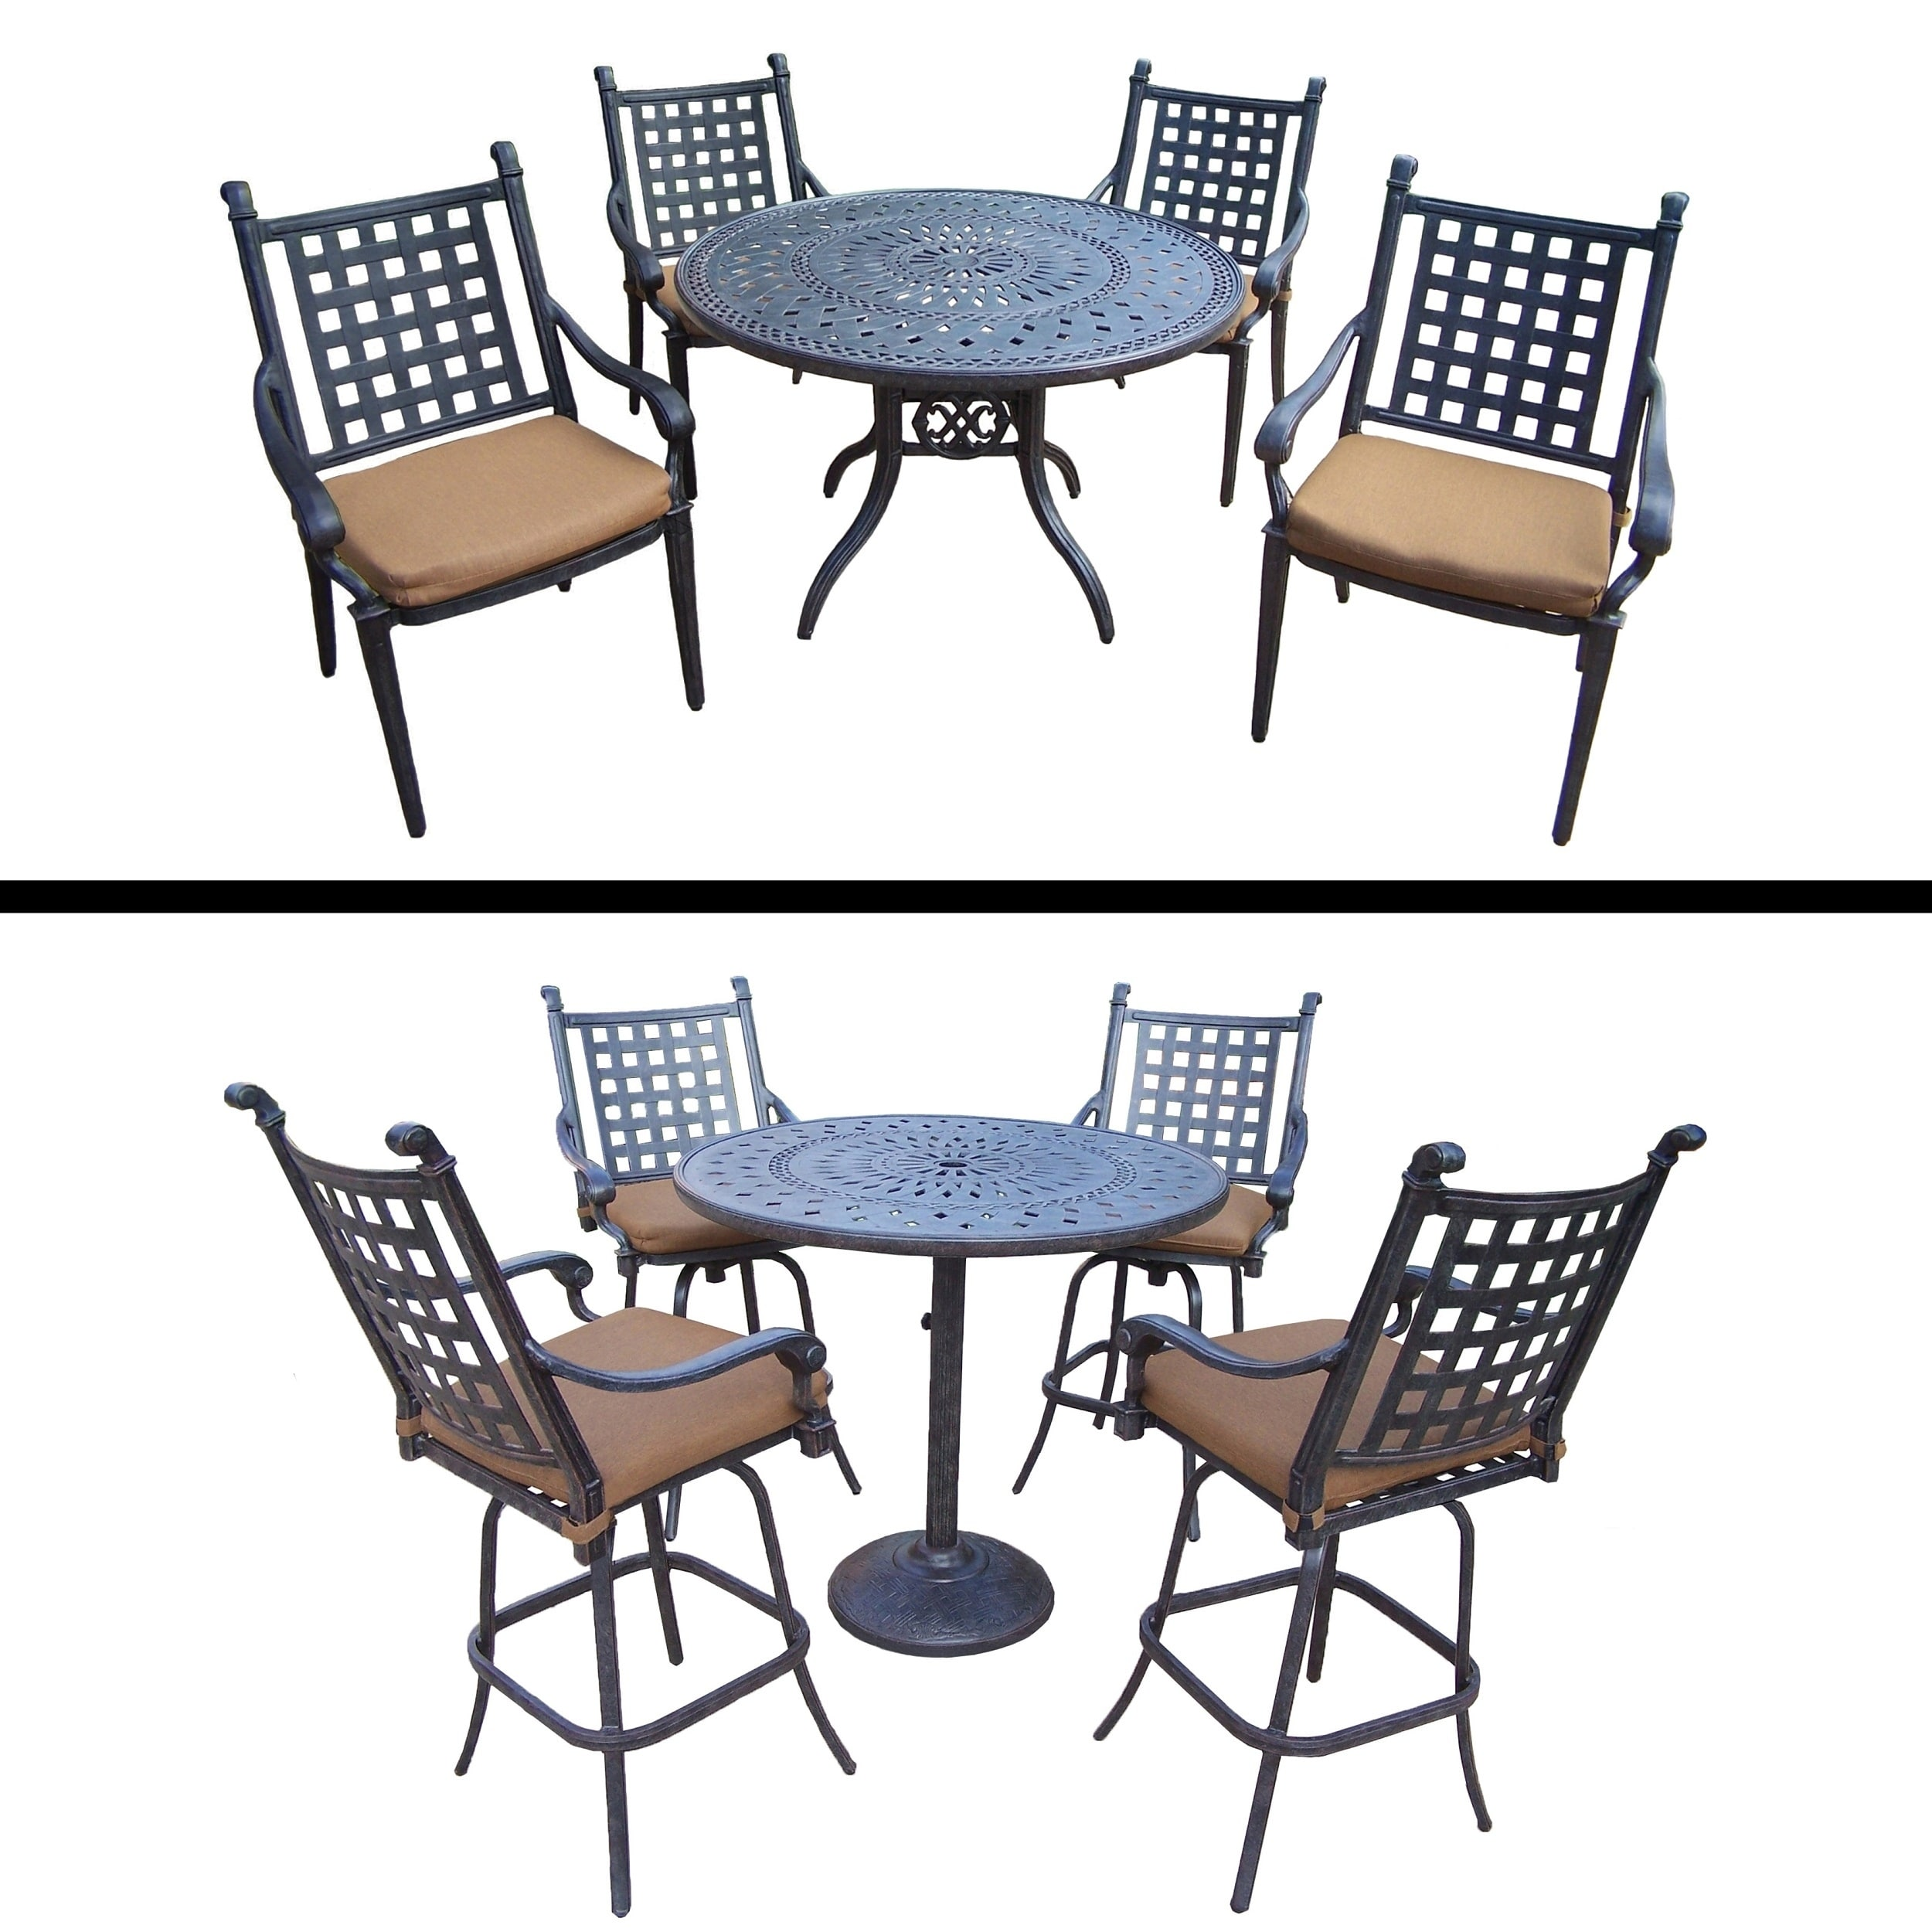 Oakland Living 5 Pc Bar Set and 5 Pc Dining Room Set with Sunbrella Cushions by Overstock